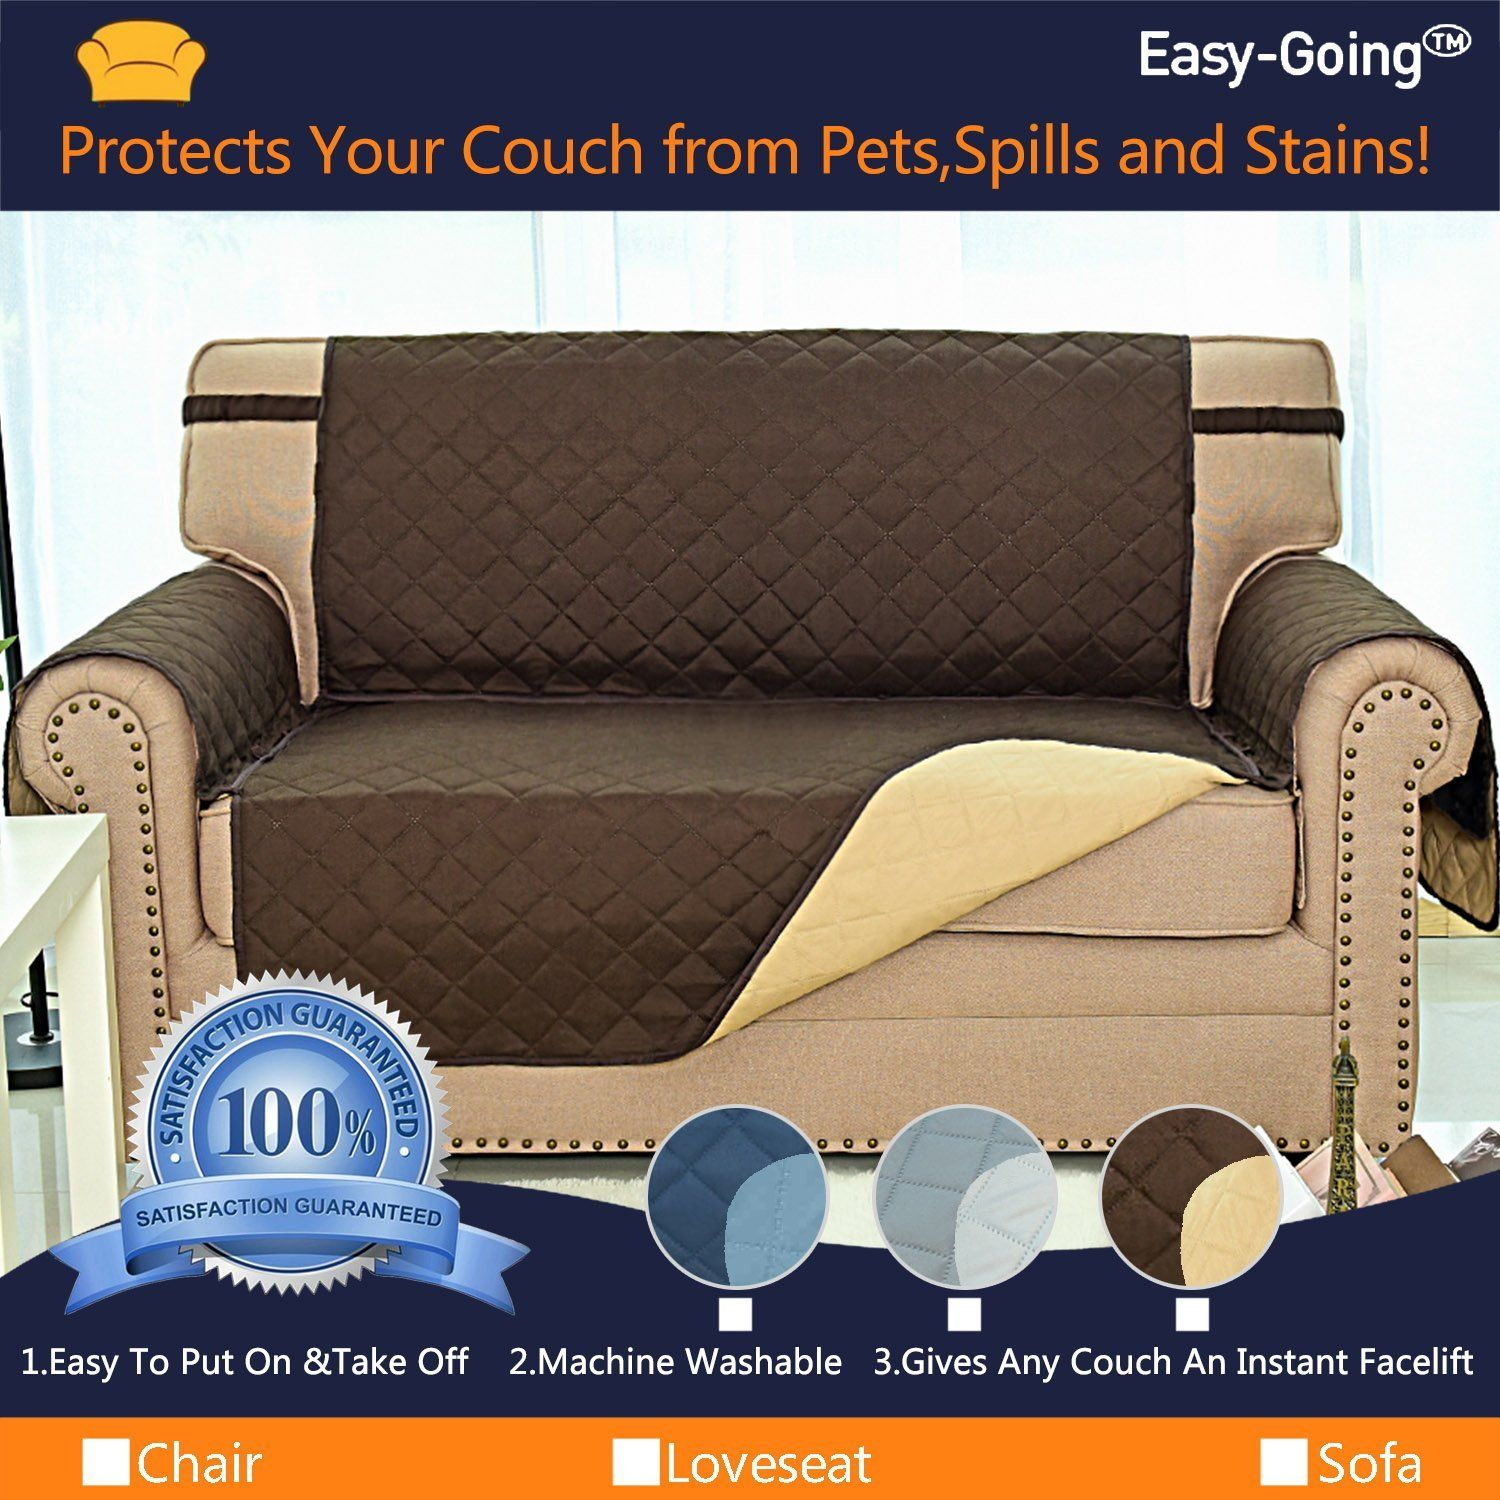 Easygoing Sofa Covers Slipcovers Reversible Quilted Furniture Protectorwater Resistantimproved Couch Shield Elastic Strapsantislip Couch Love Seat Sofa Covers